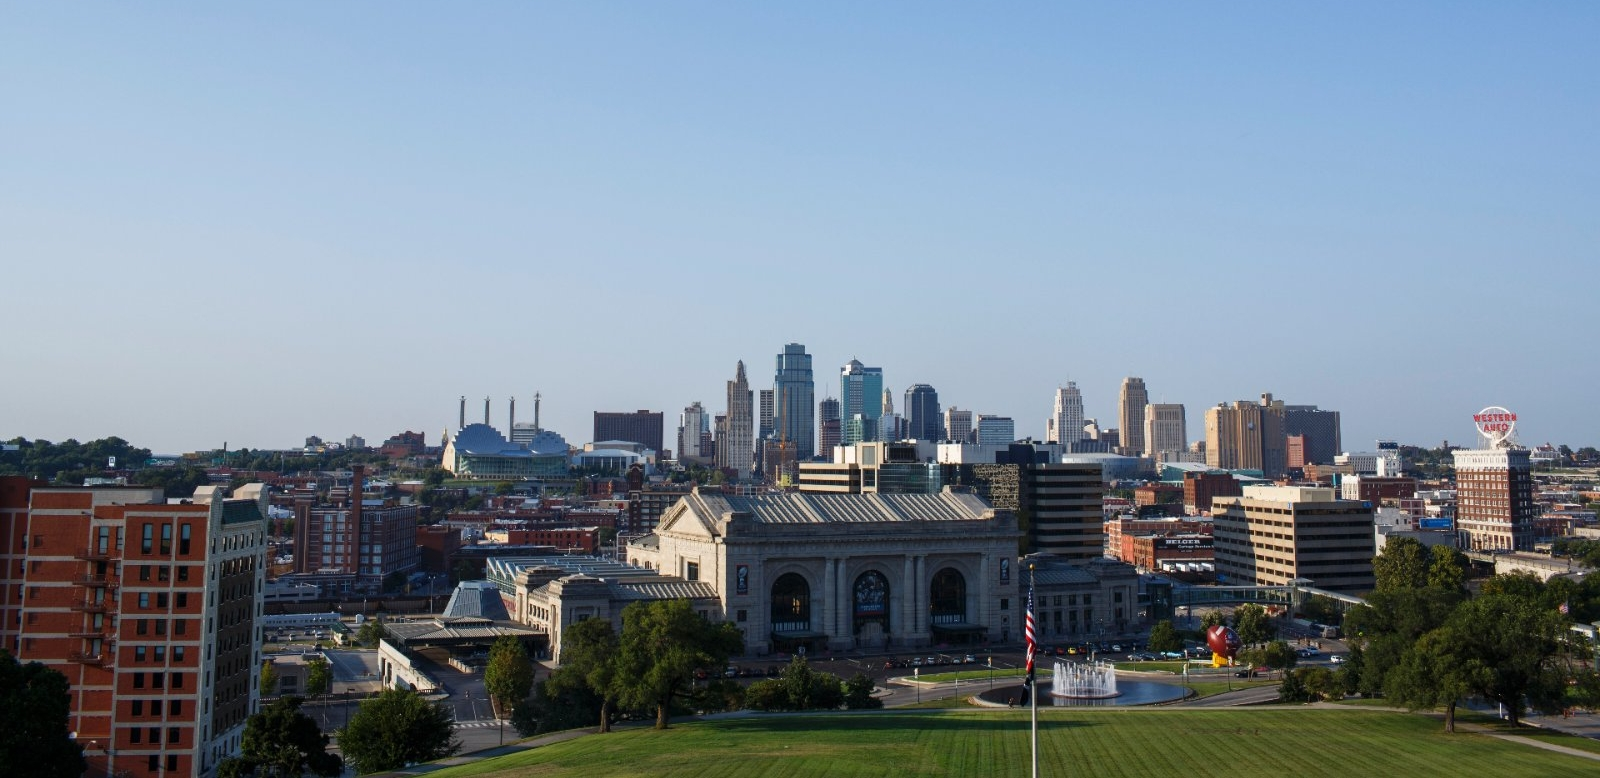 The Kansas City, MO skyline.